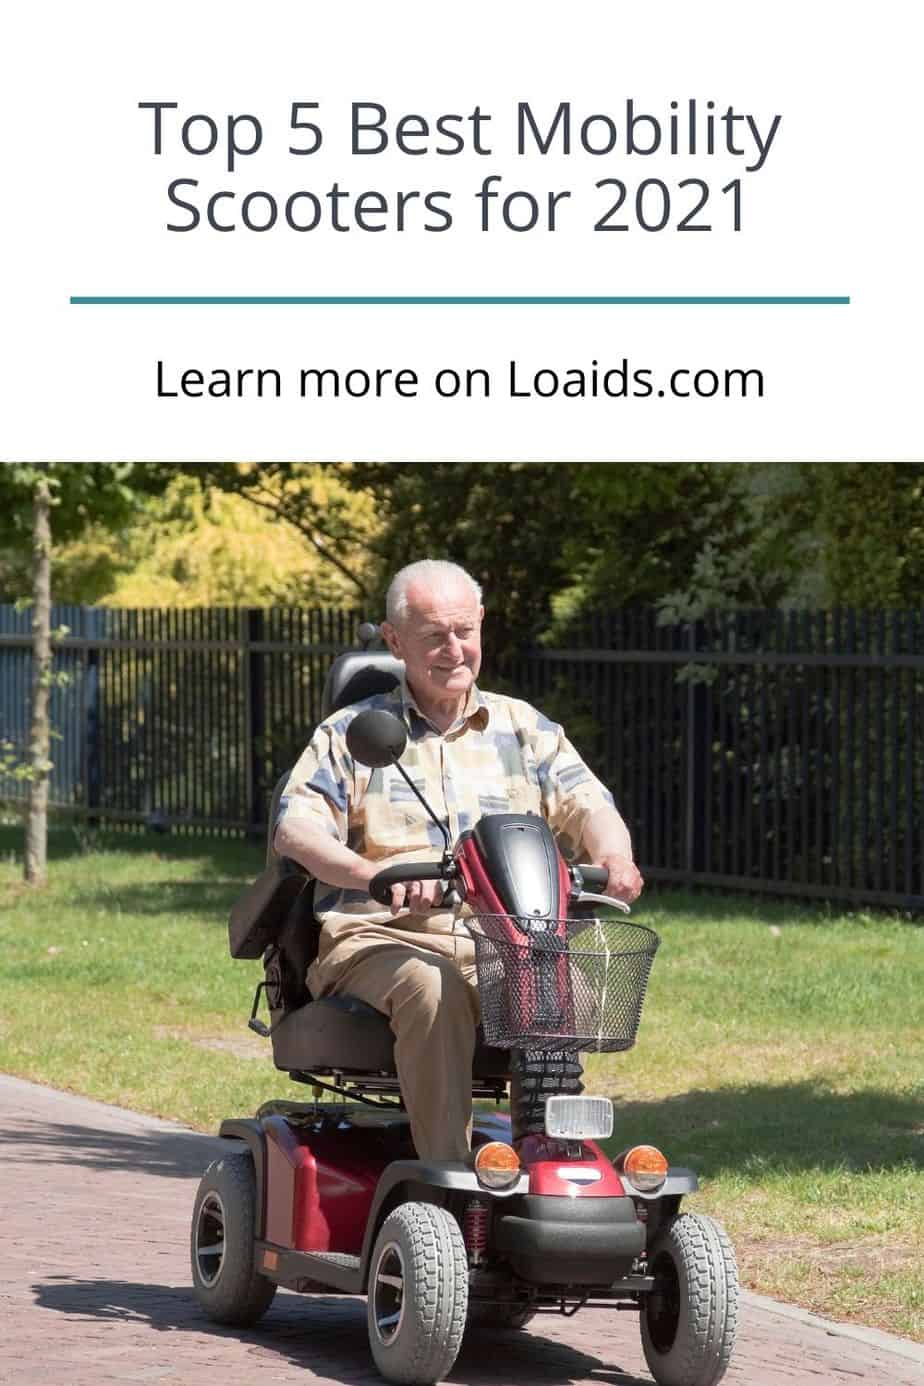 a senior man happily riding one of the best mobility scooters